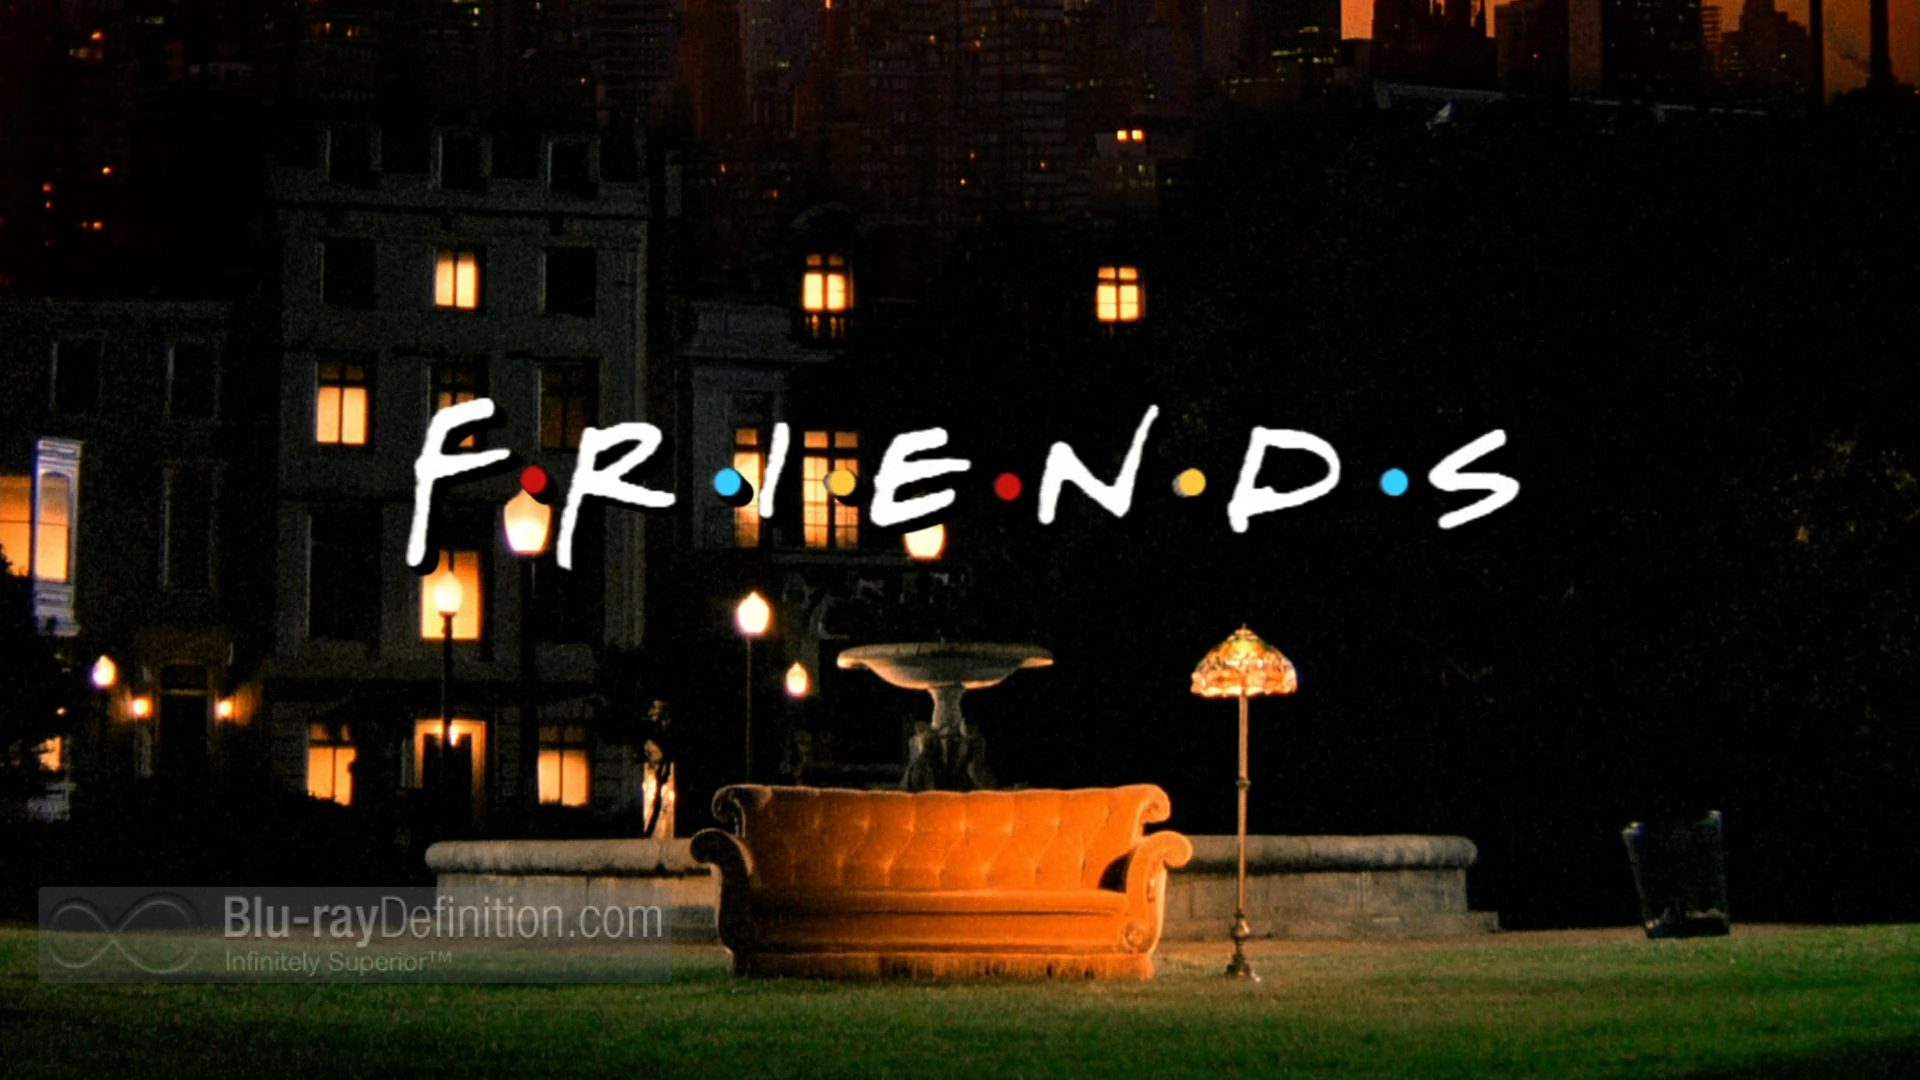 The 2014 Friendship List on Latest Writing A Song